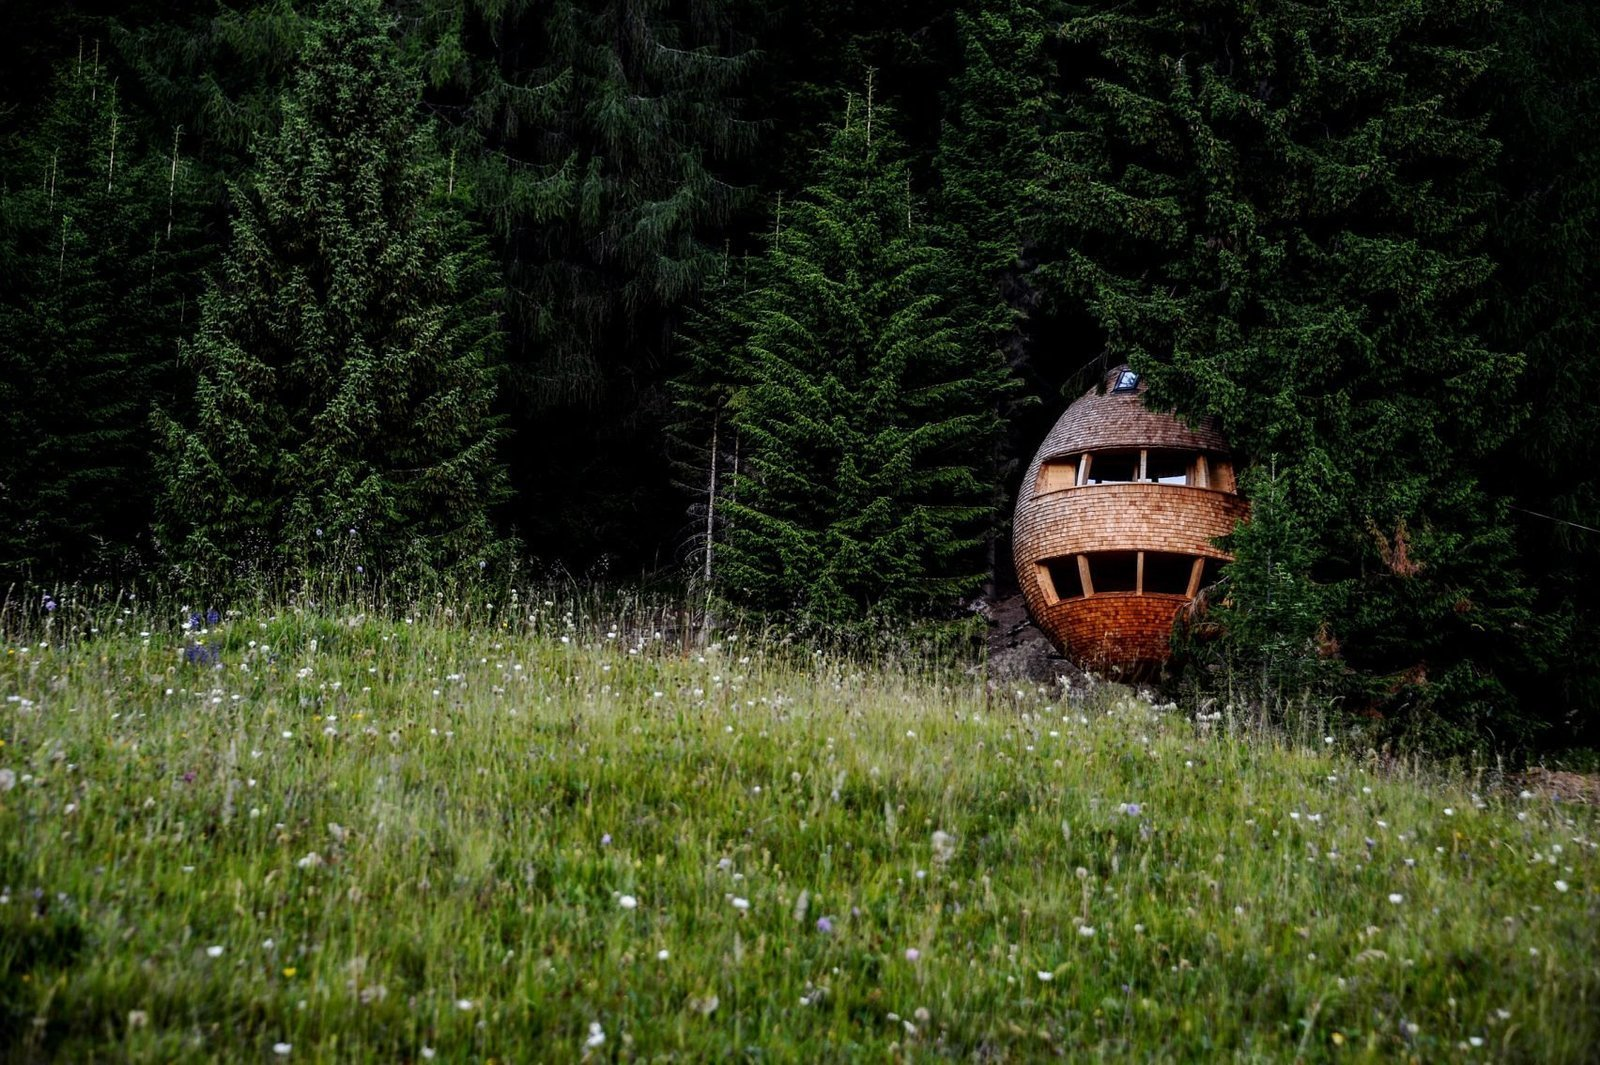 These Tree Houses in the Dolomites Look Like Egg-Shaped Pinecones